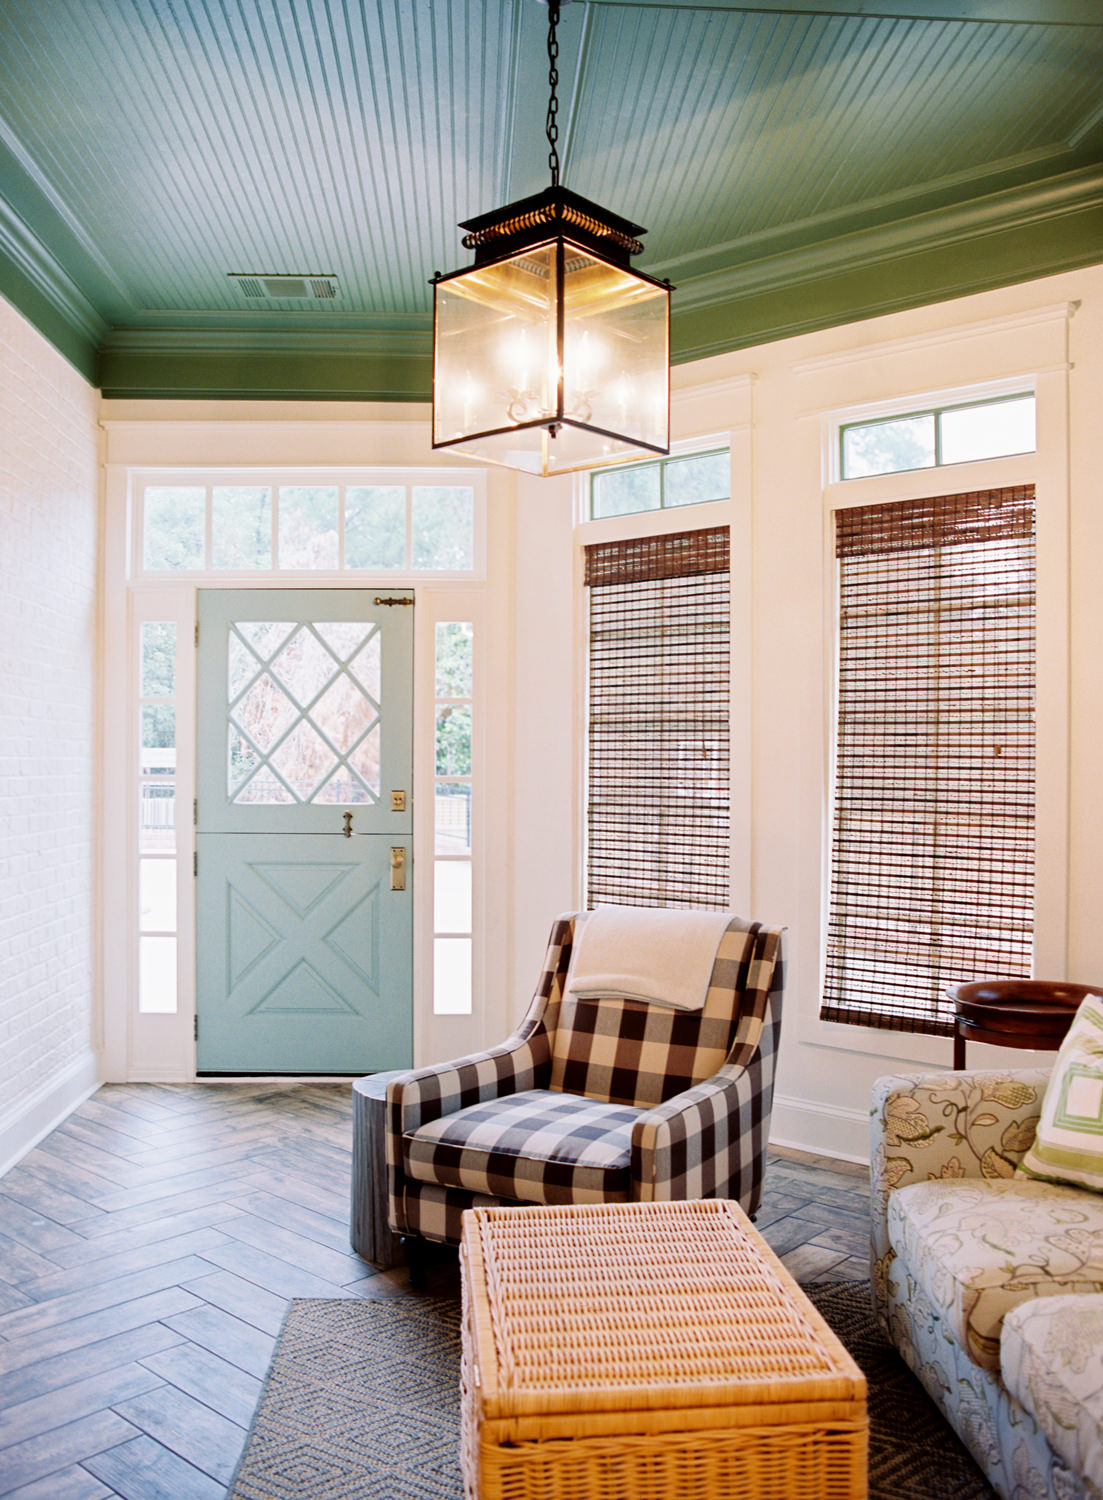 cottrell_photography_interiors-018